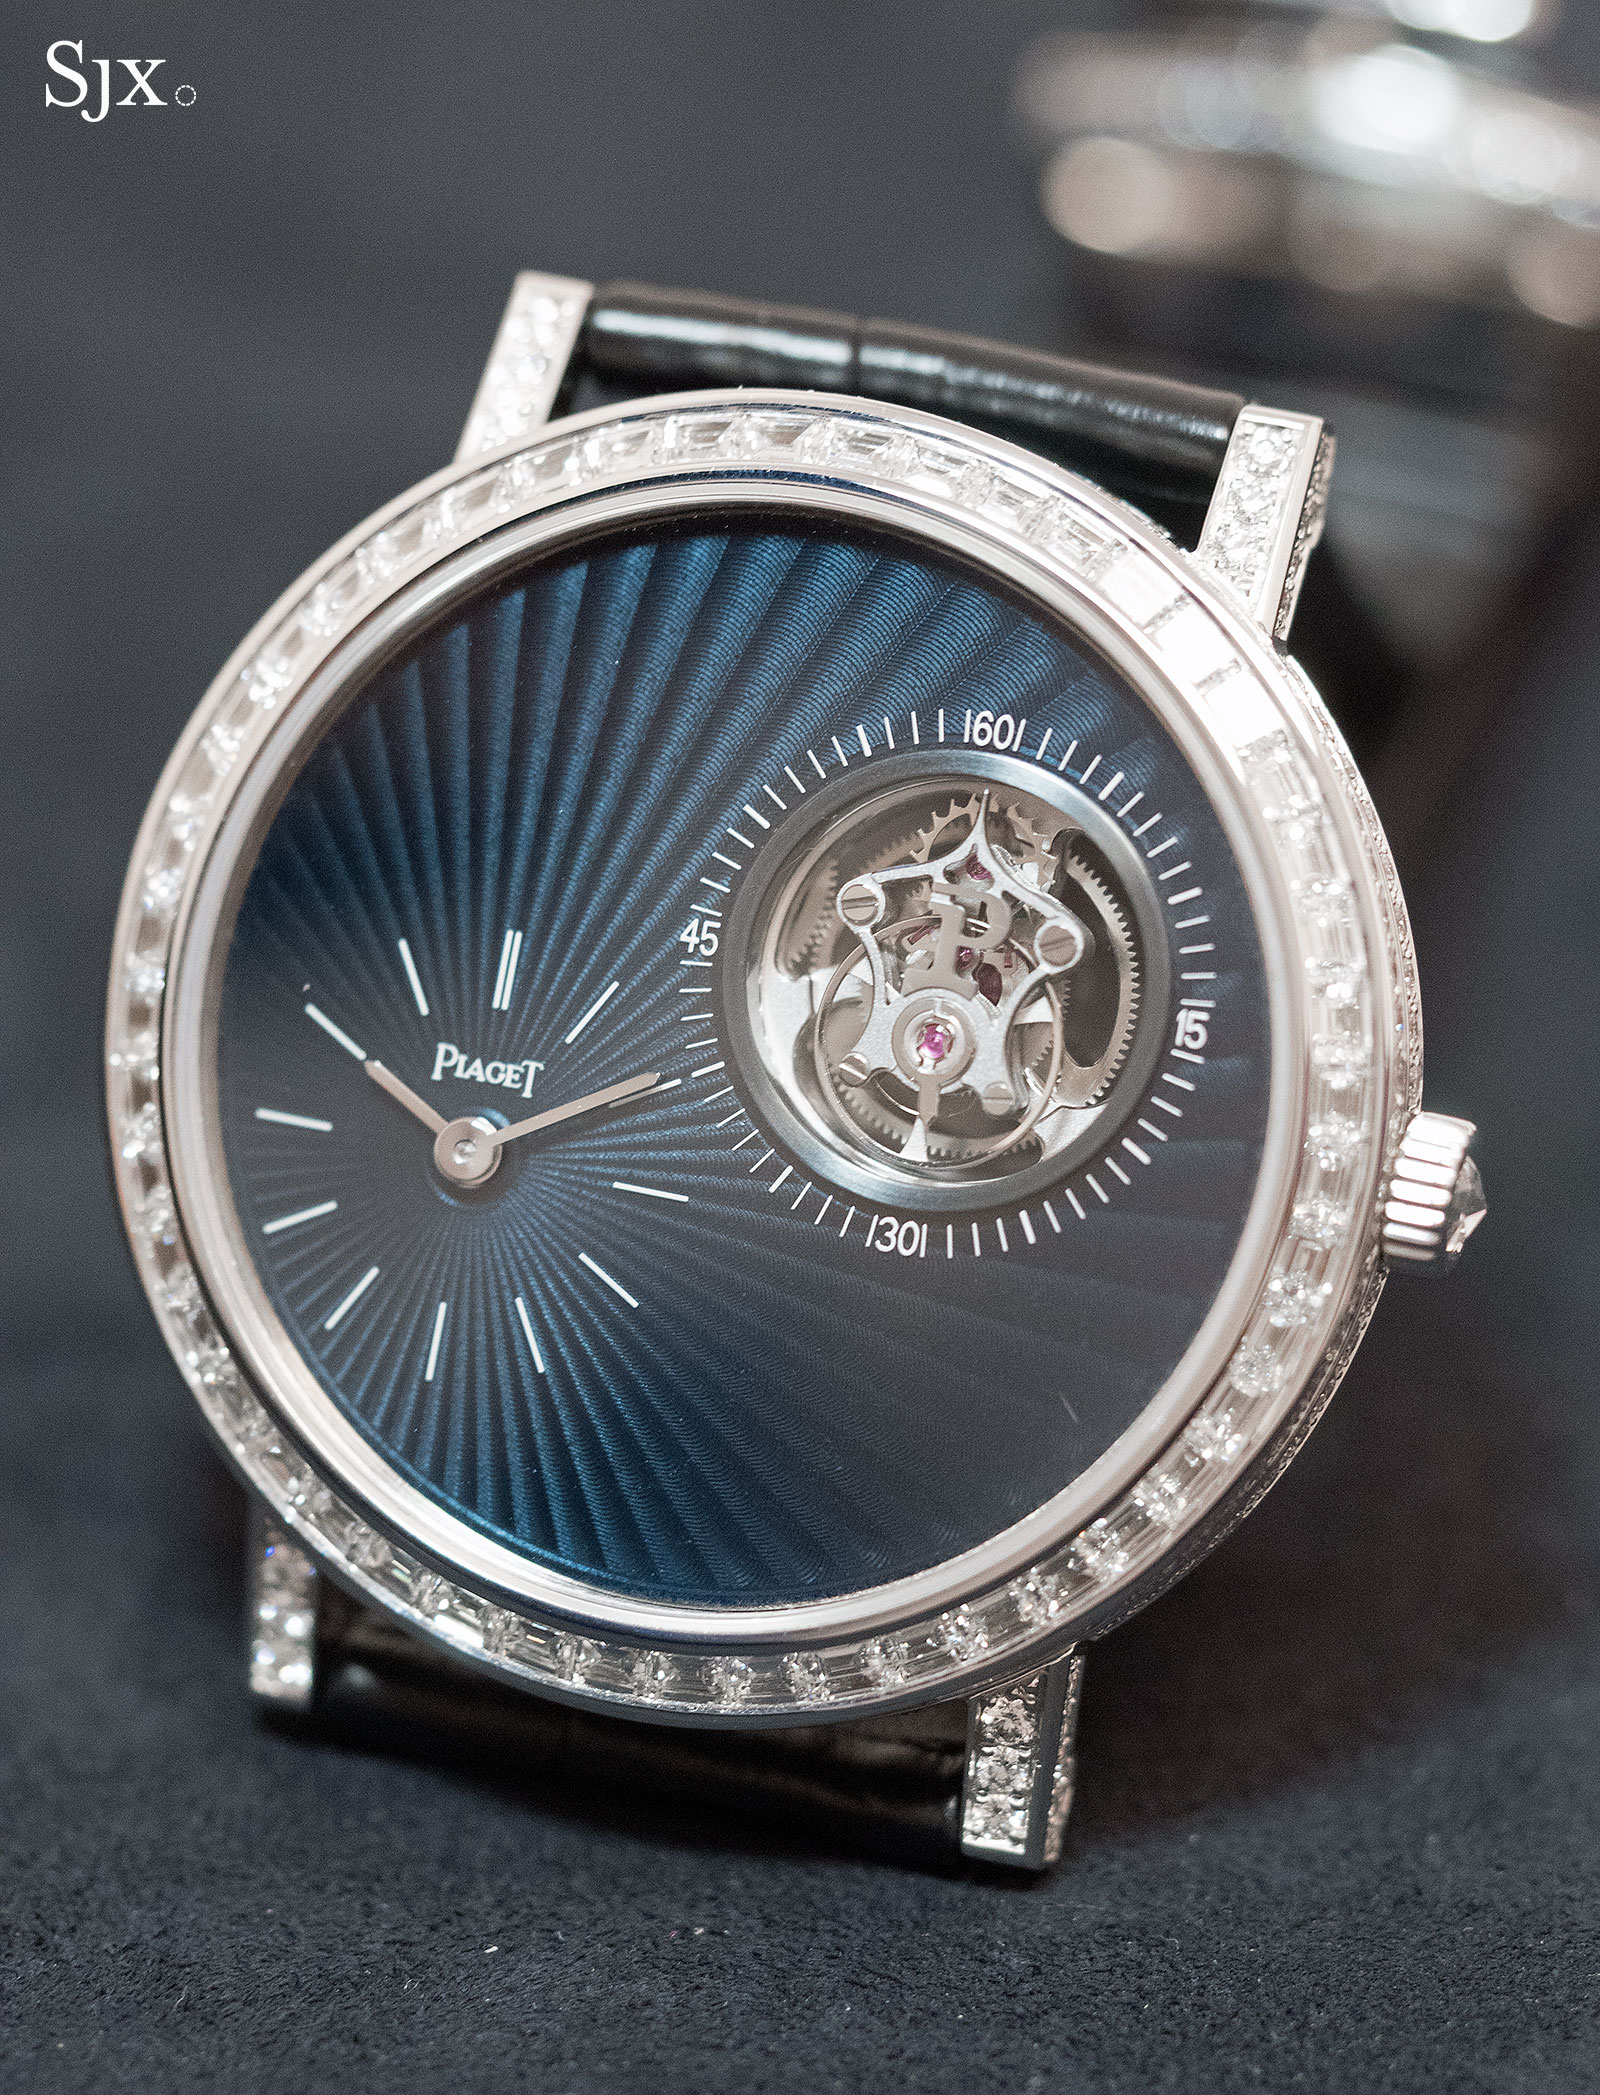 Piaget Altiplano 60th Anniversary Tourbillon High Jewellery 2